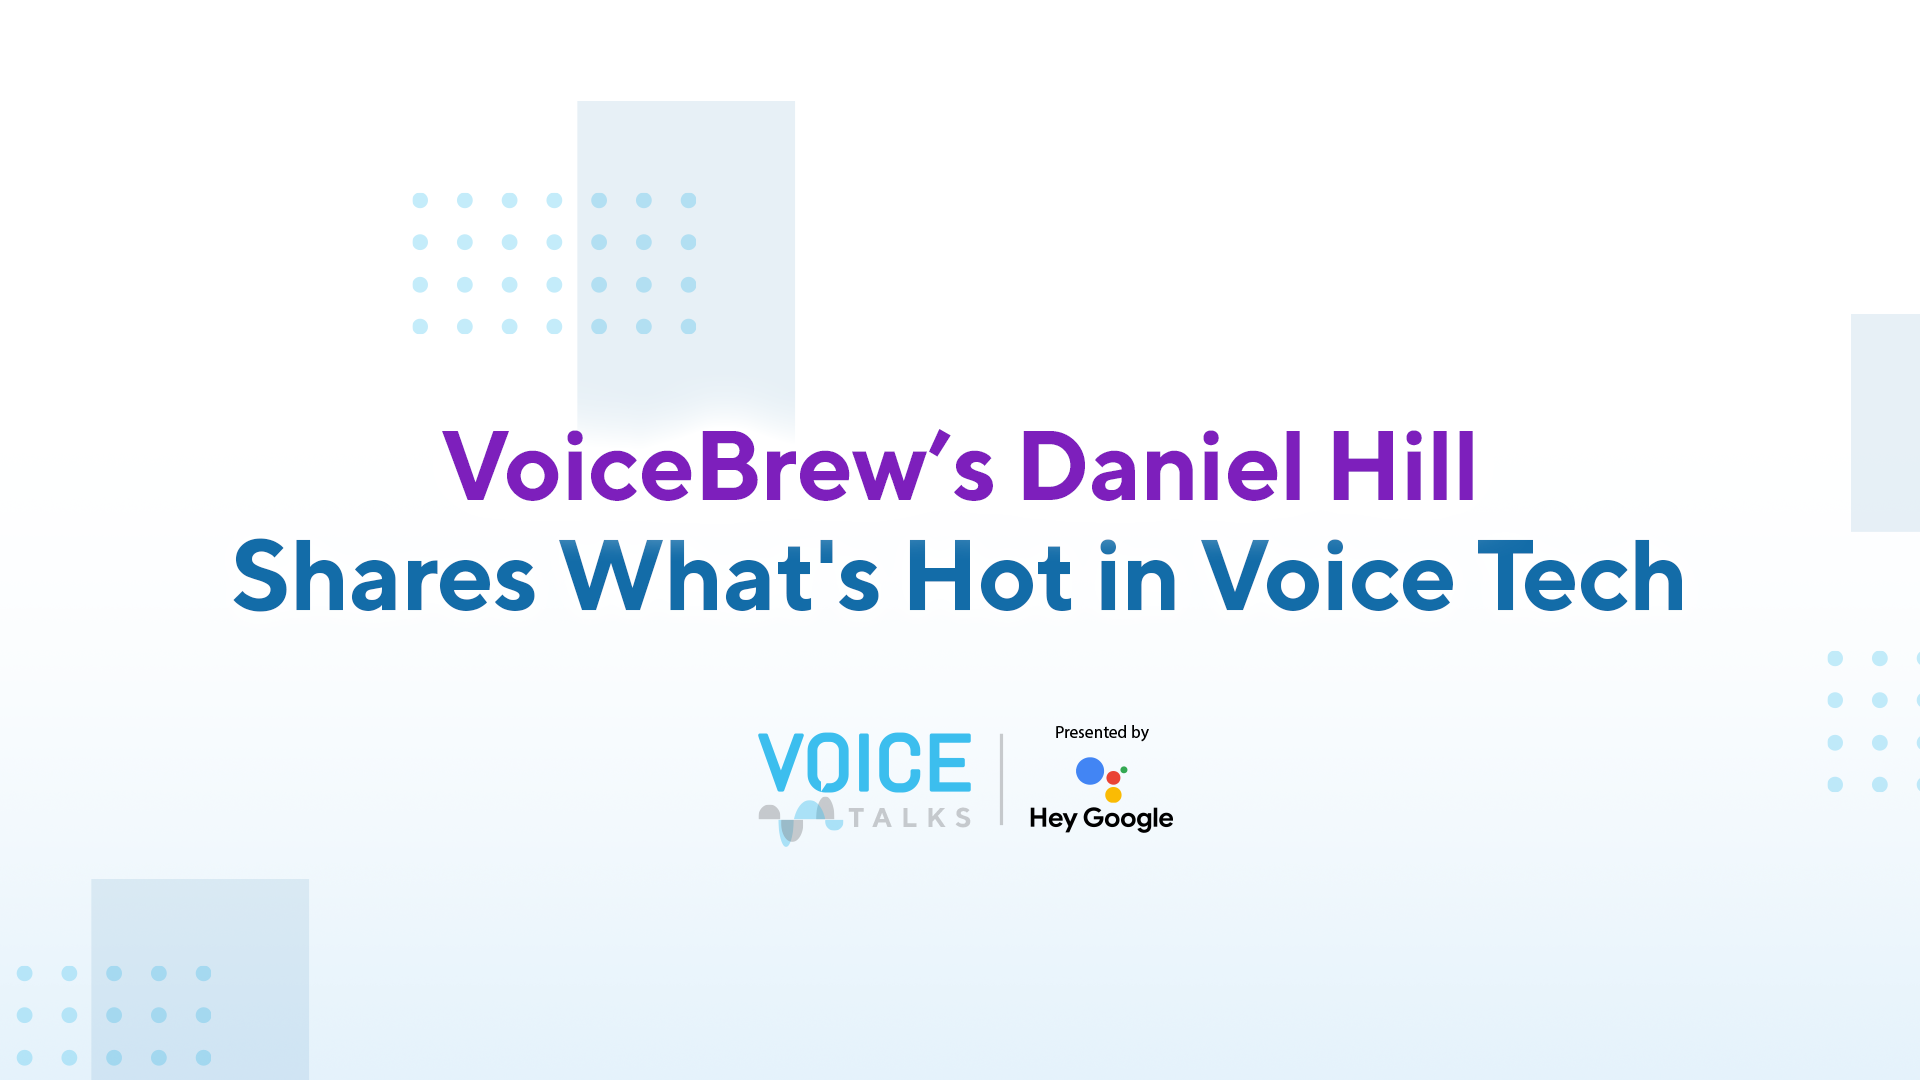 VoiceBrew's Daniel Hill Shares What's Hot in Voice Tech